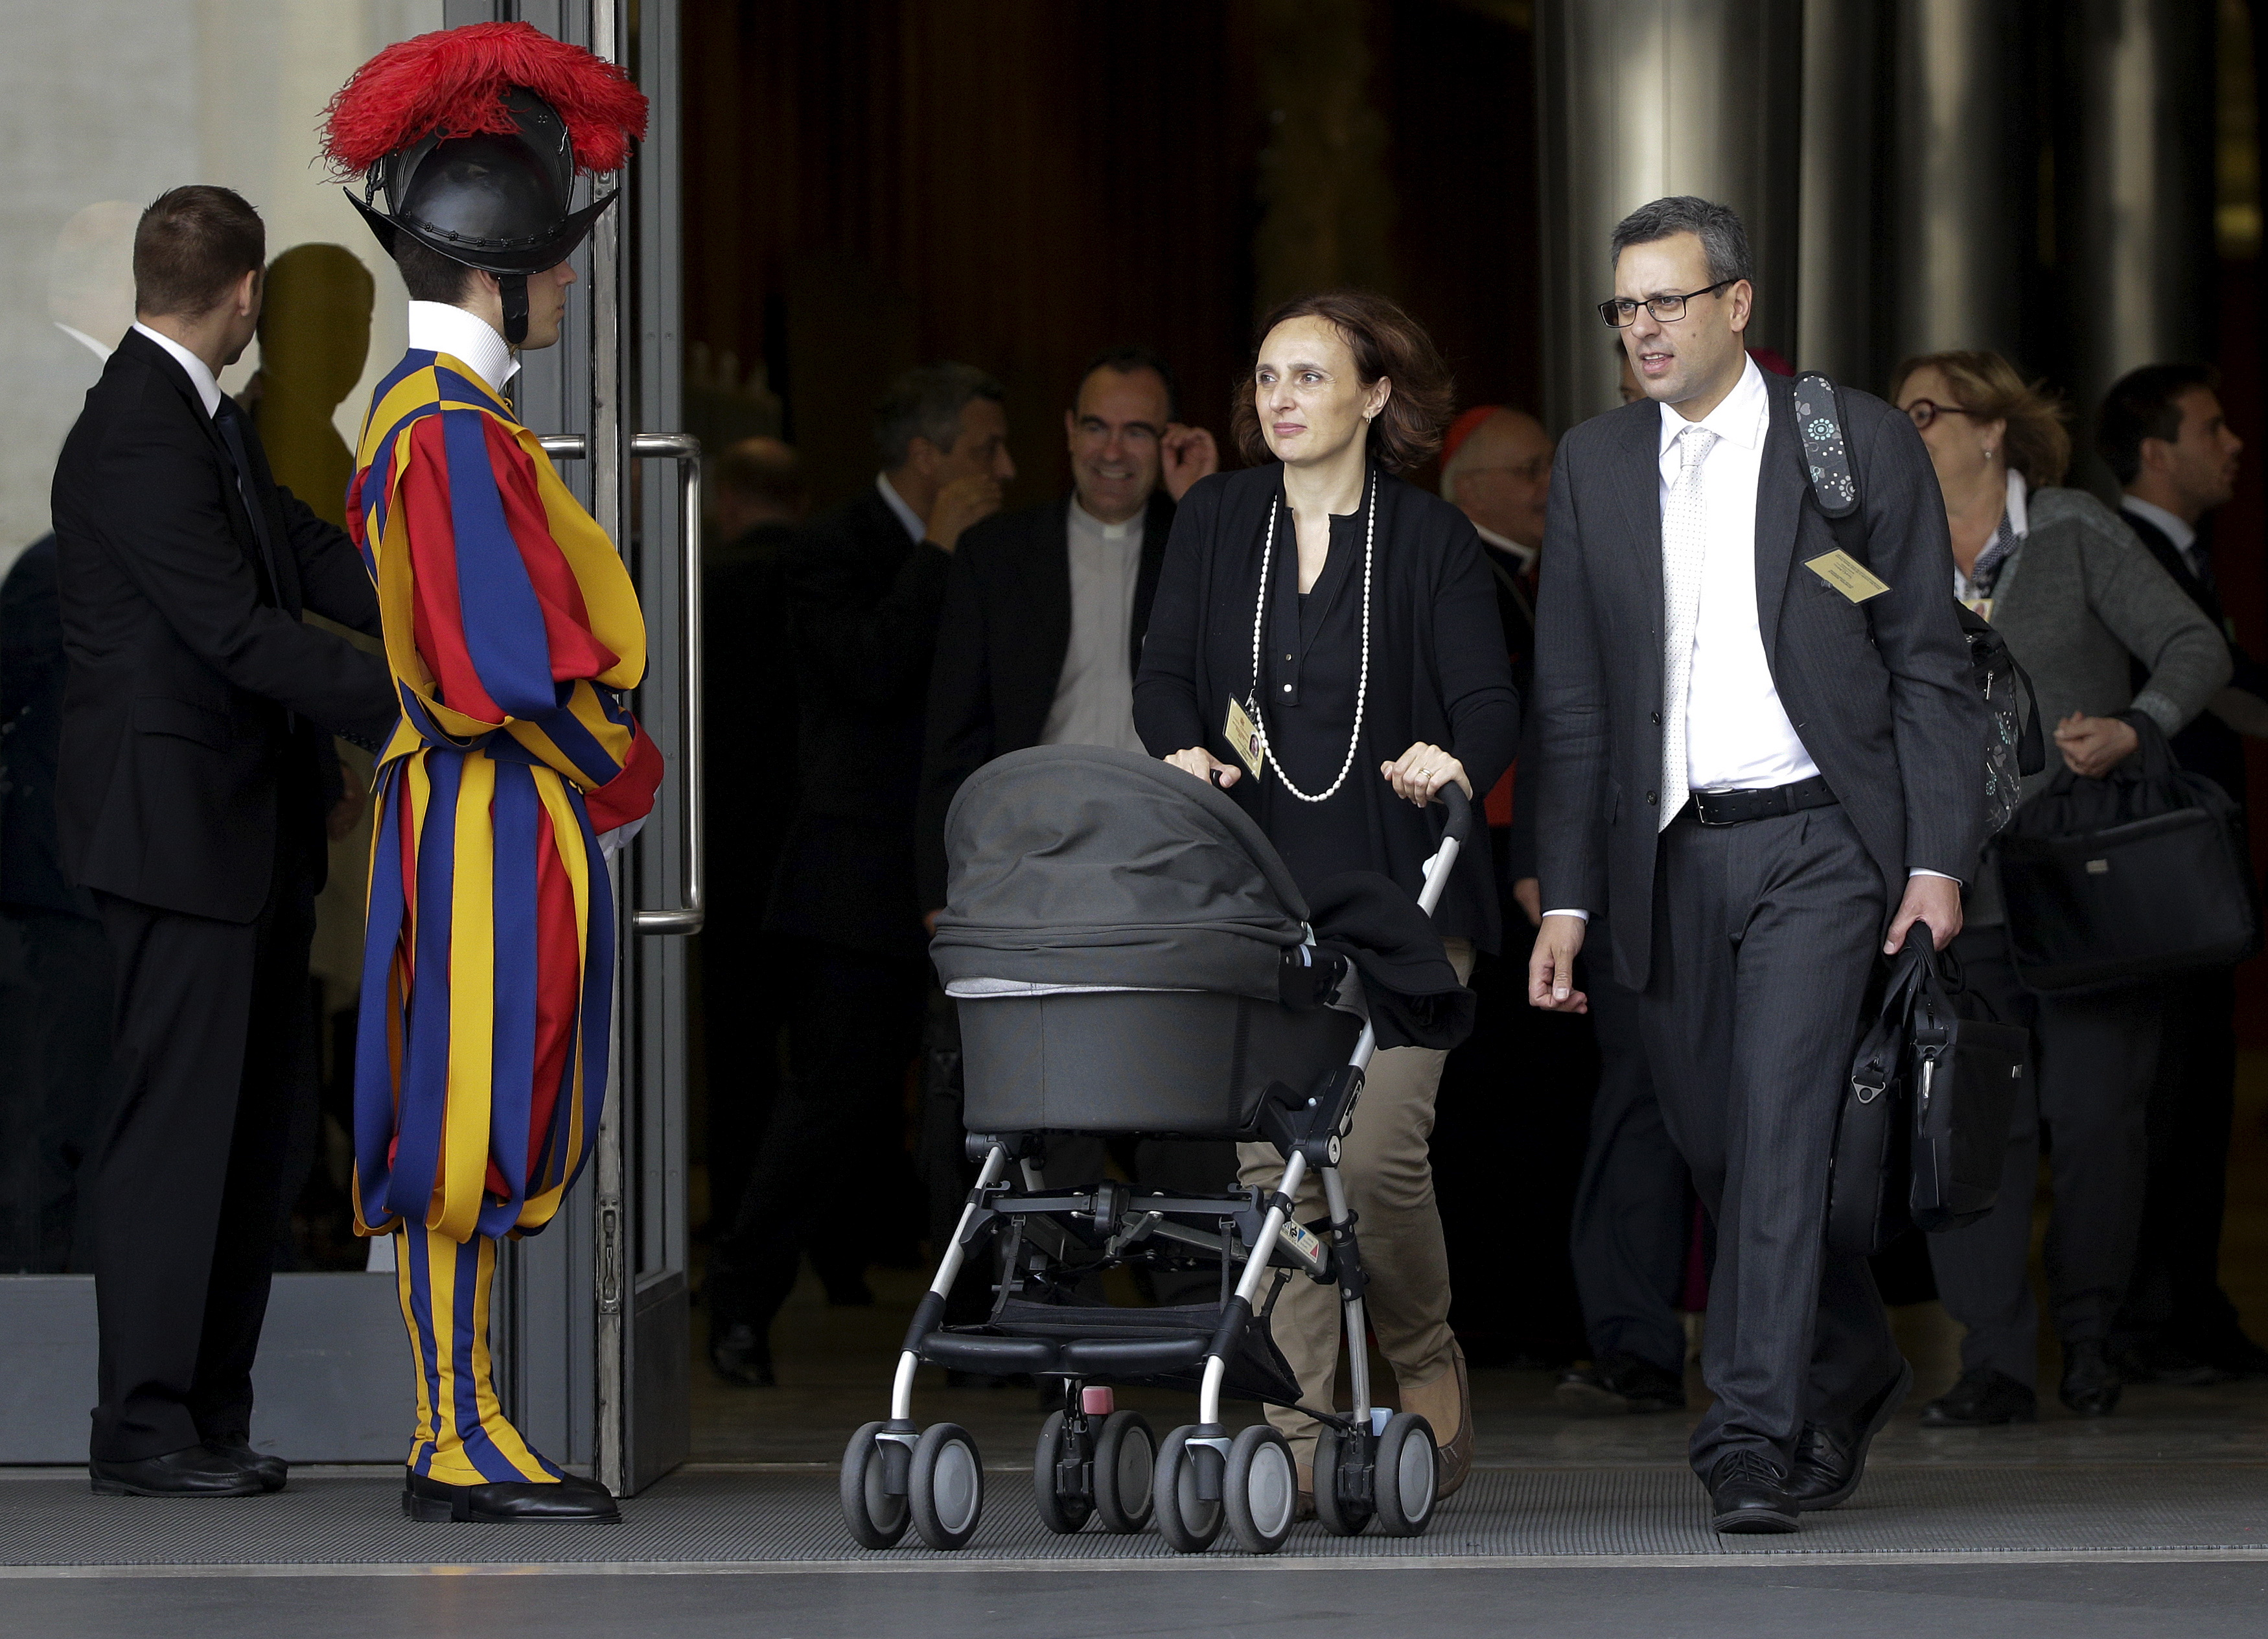 Attendees leave the synod of the family at the end of the morning session led by Pope Francis at the Vatican, Oct. 5, 2015.